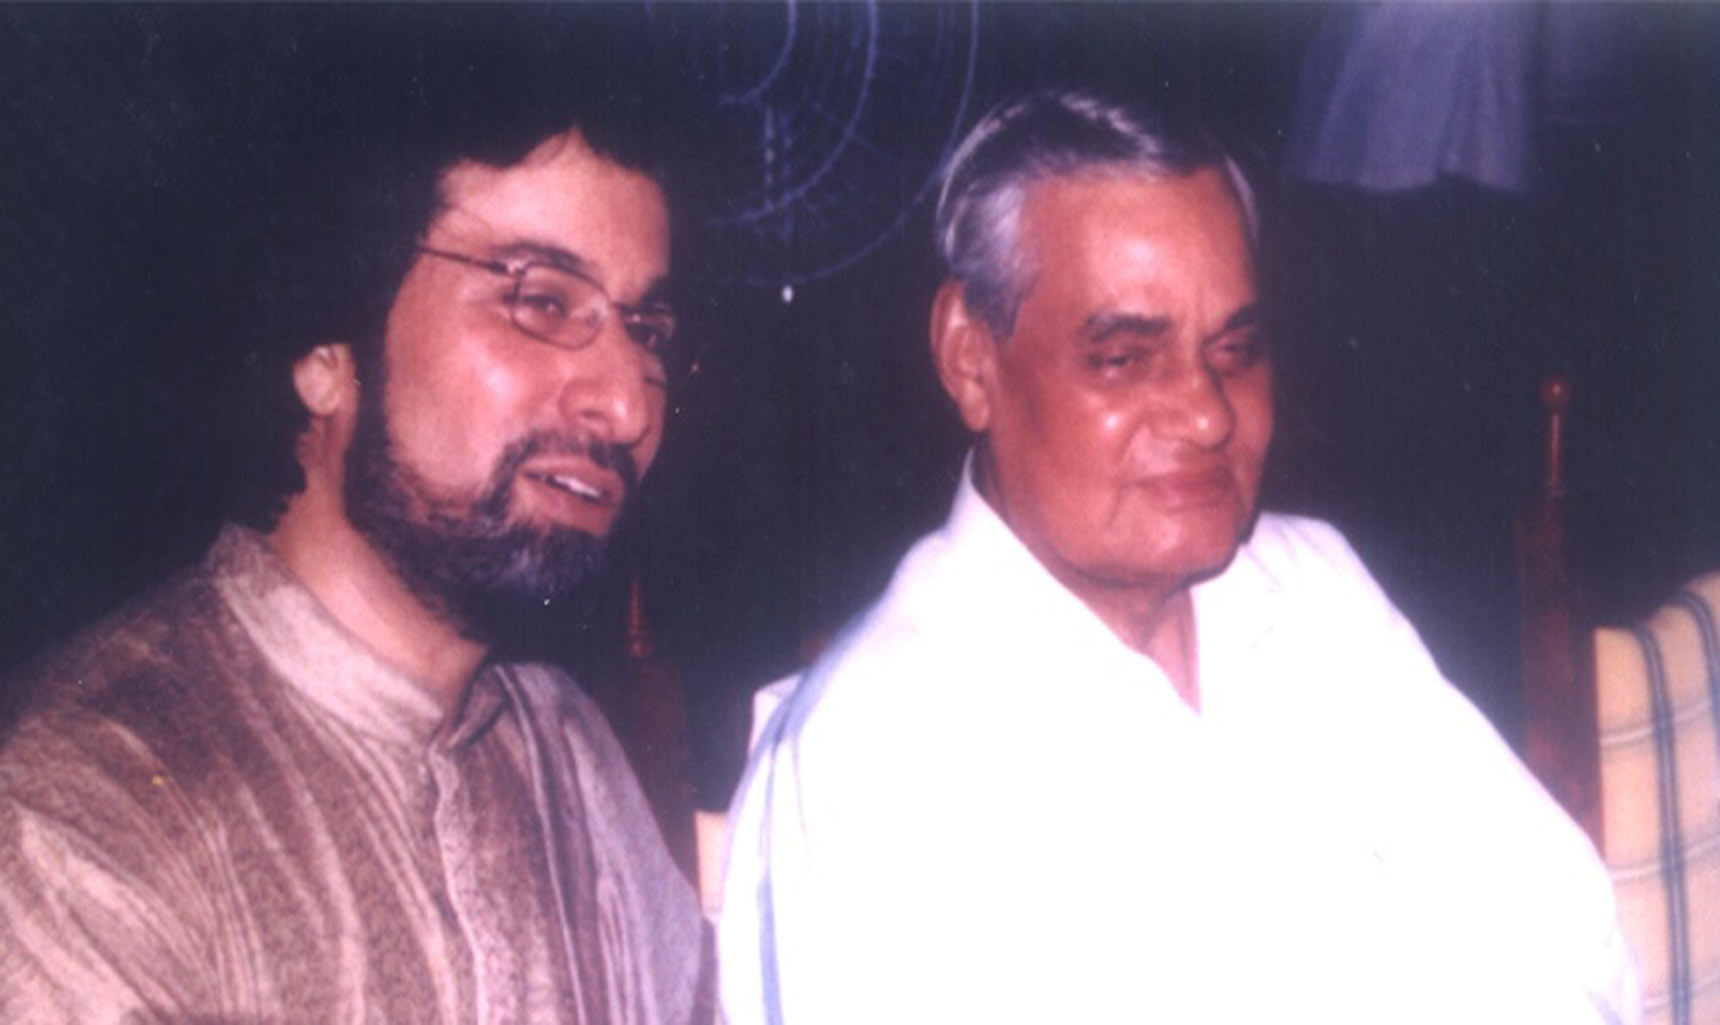 With the Hon. PM of India Shri Atal Behari Vajpayee Dec 31st 1999.